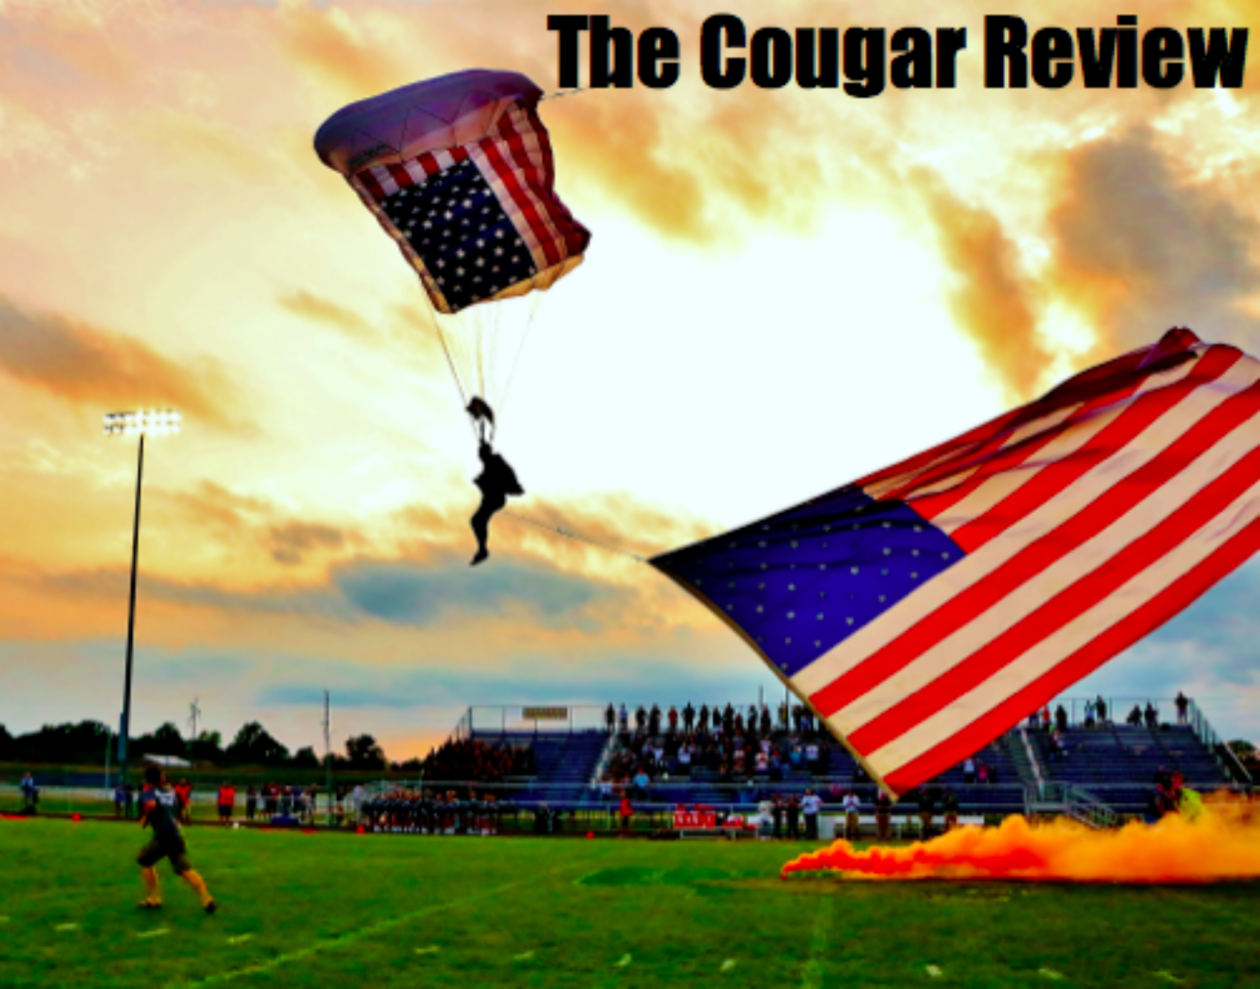 The Cougar Review